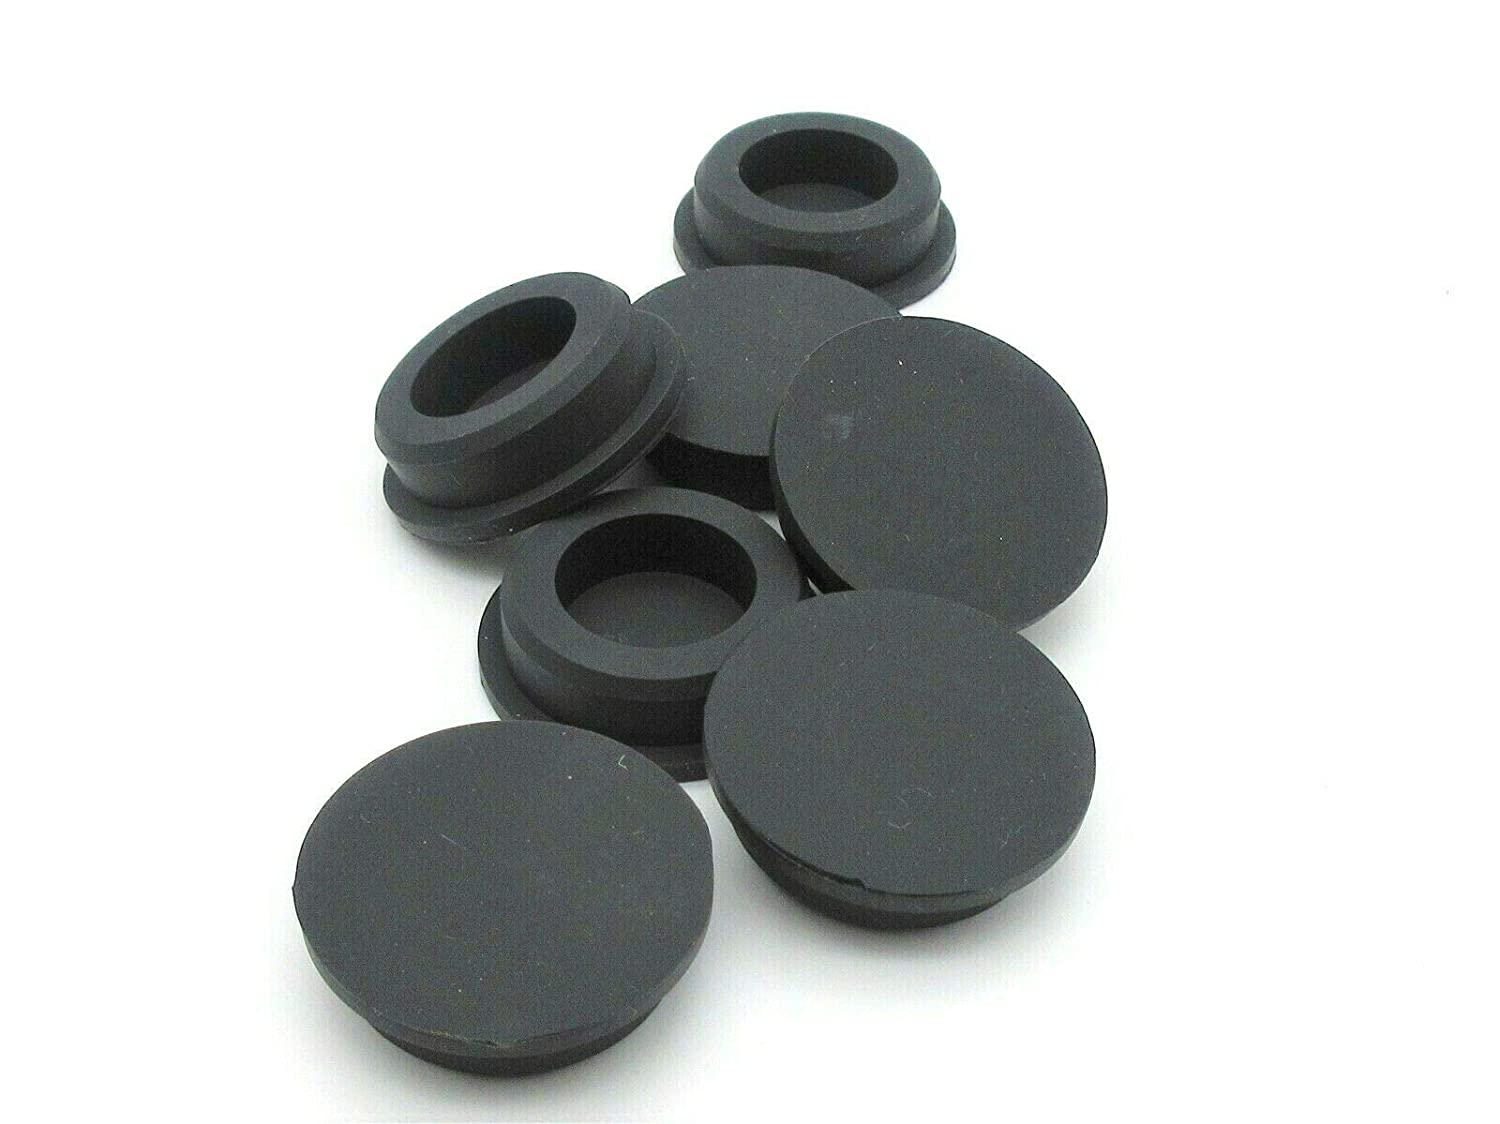 Genuine Free Shipping outlet 1 8'' Rubber Firewall Hole Plugs. Compression Id Stem. Push-in